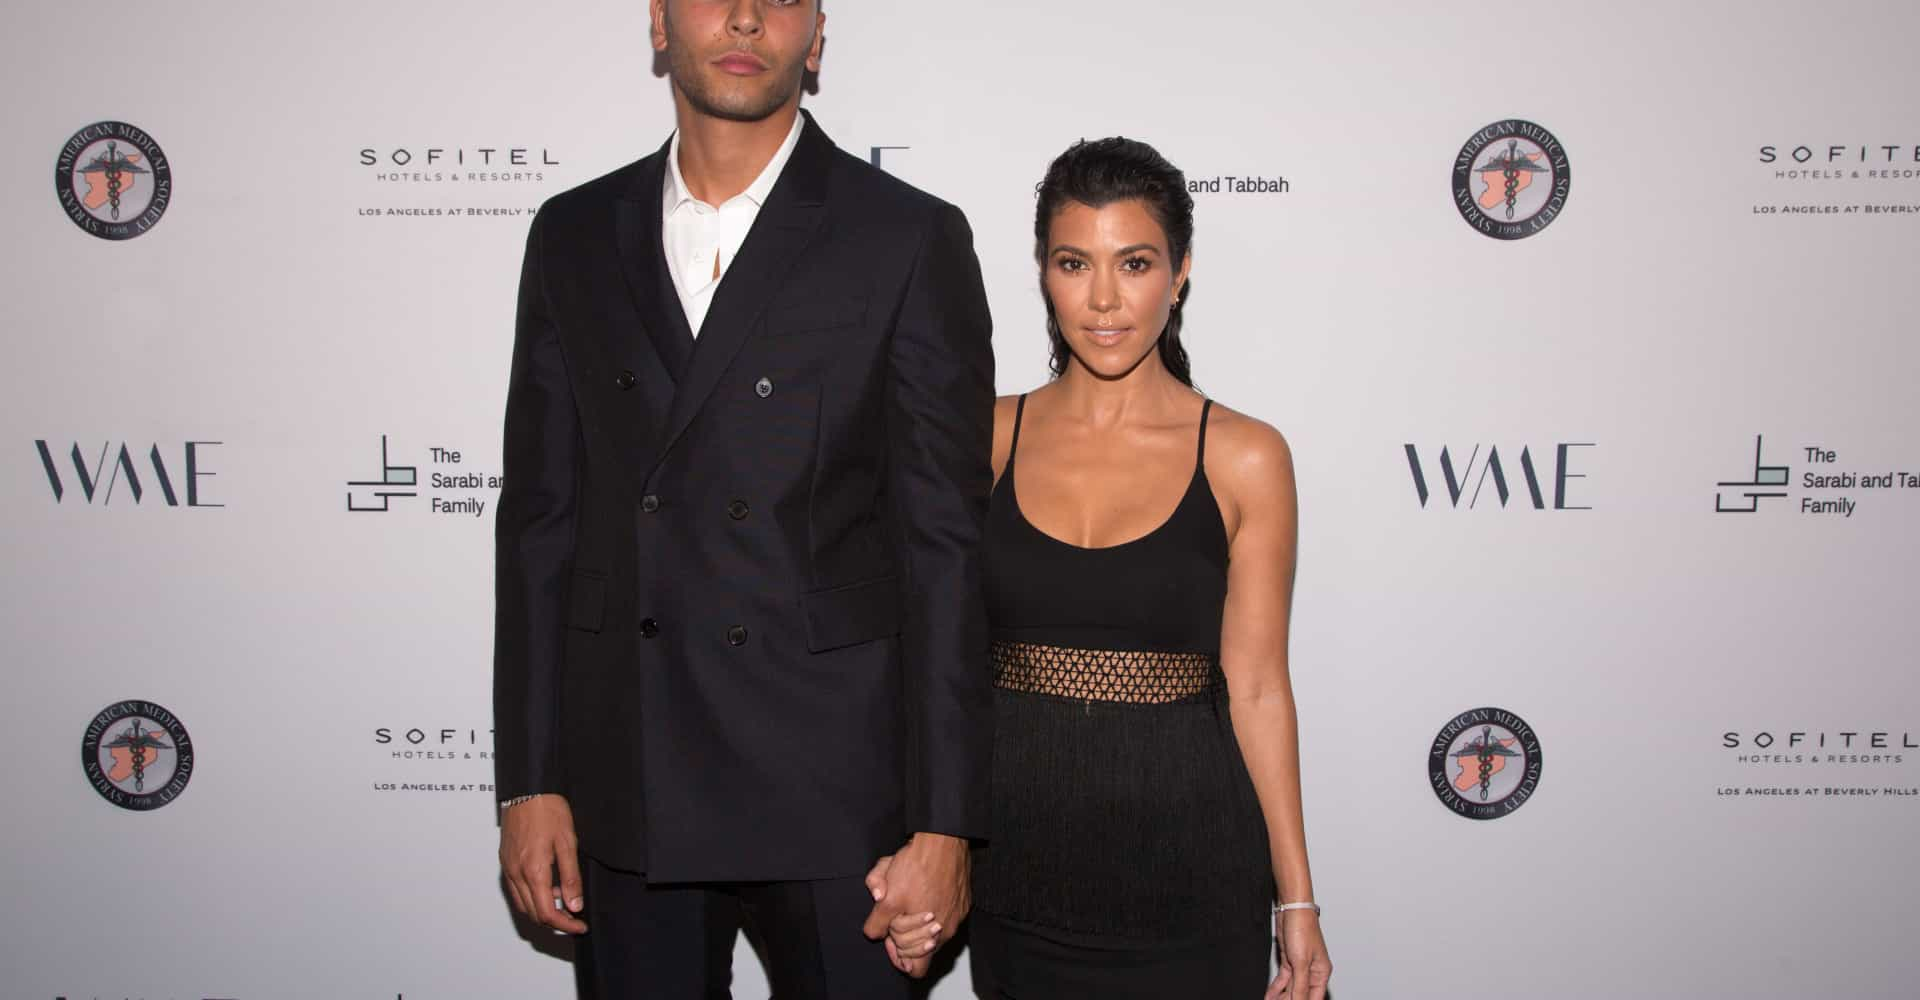 Wasting no time: quickest celebrity rebounds